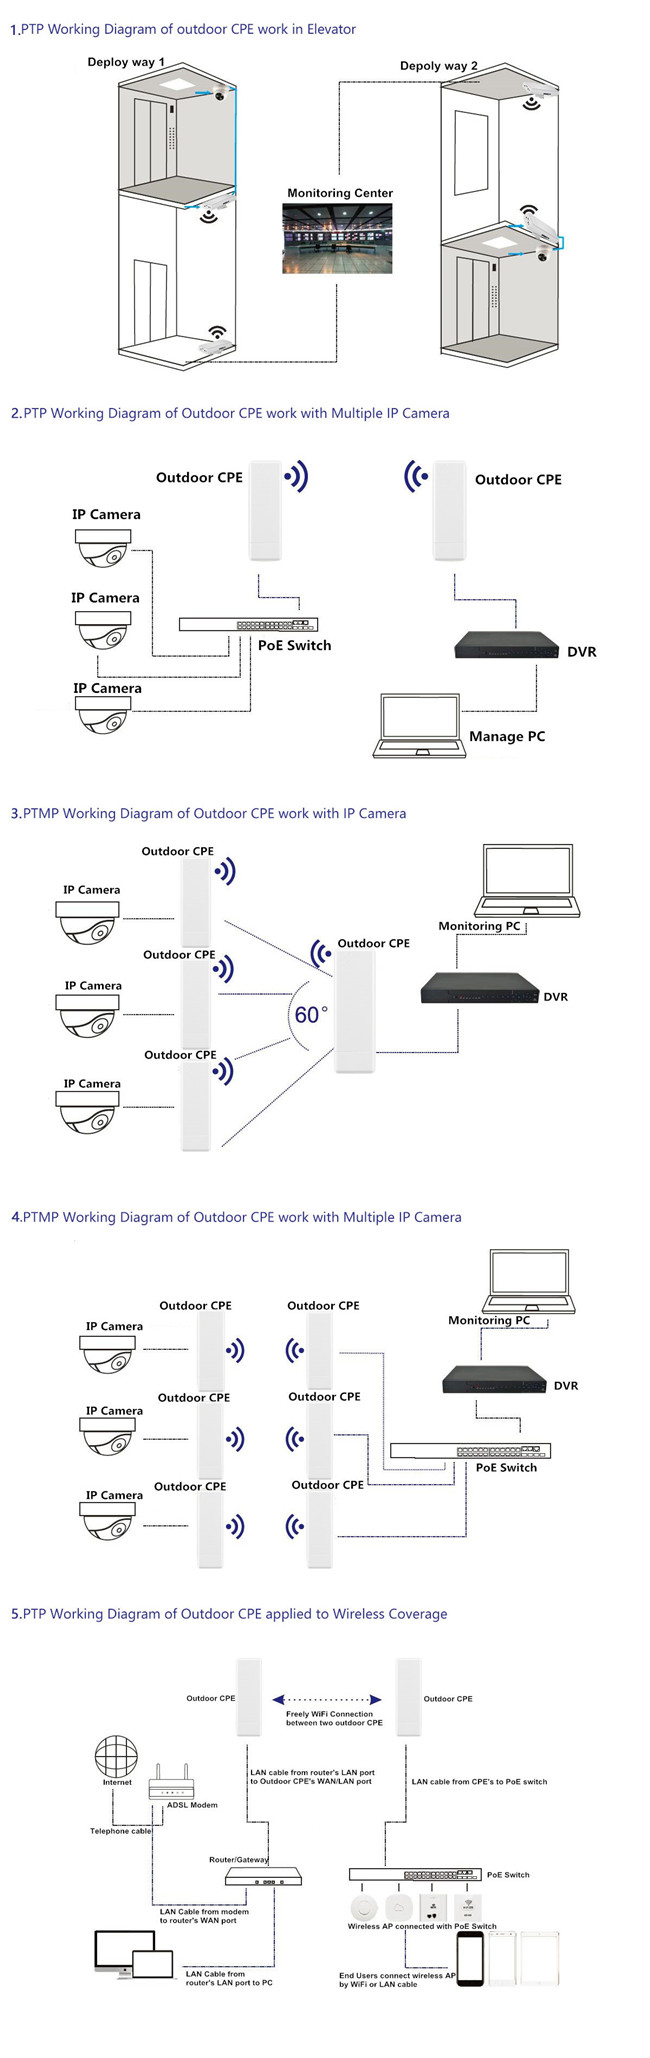 FE Port 450Mbps Comply 5.8 GHz Outdoor CPE with IEEE802.11 AC Standard